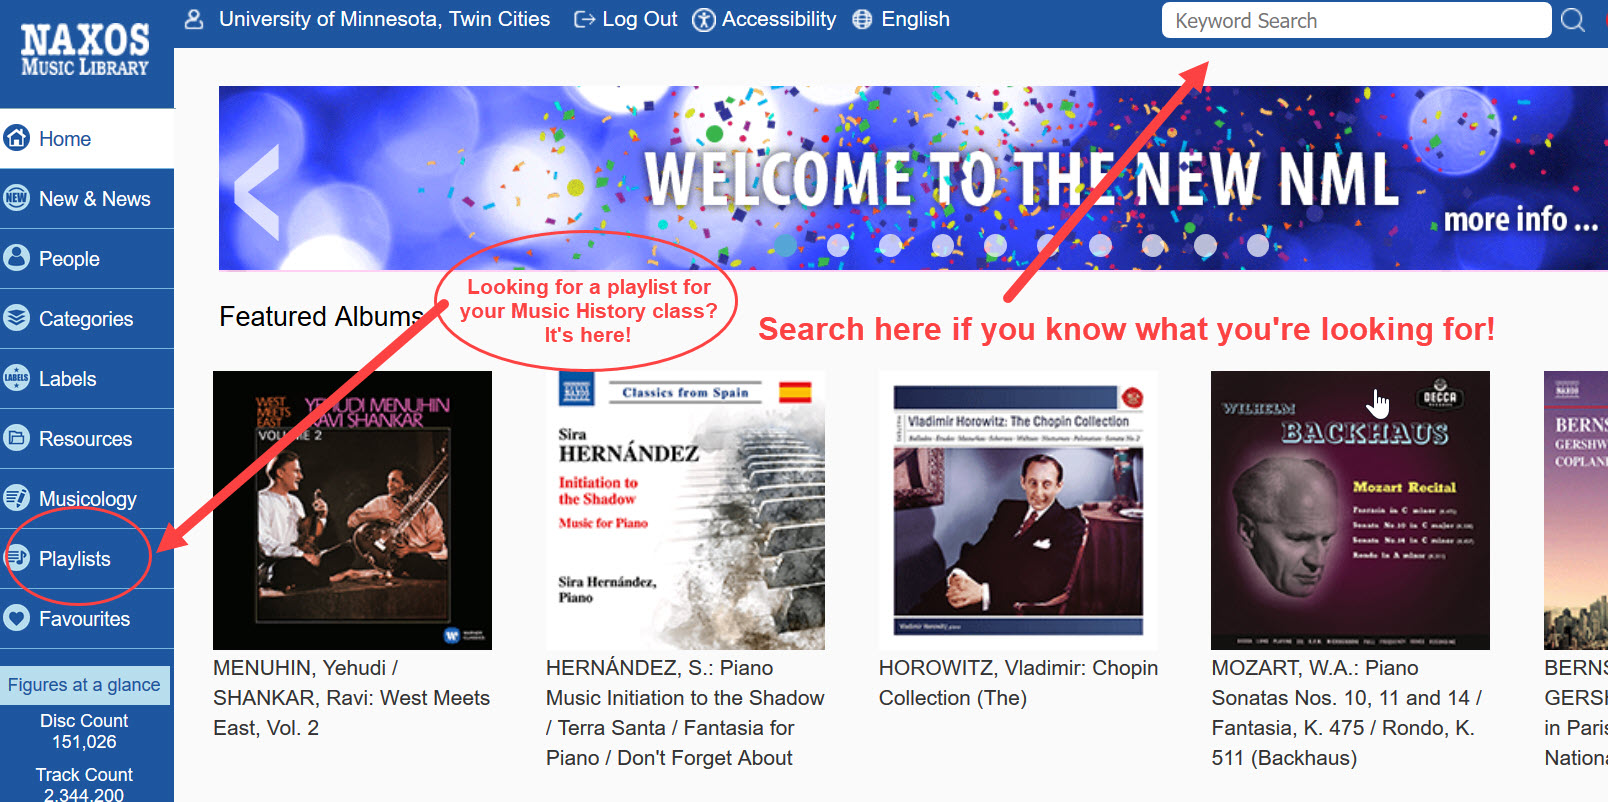 An image of the Naxos Music Library homepage with arrows pointing to the search box in the upper right corner and the Playlists link in the left-side menu for accessing Music History course playlists created by UMN faculty.